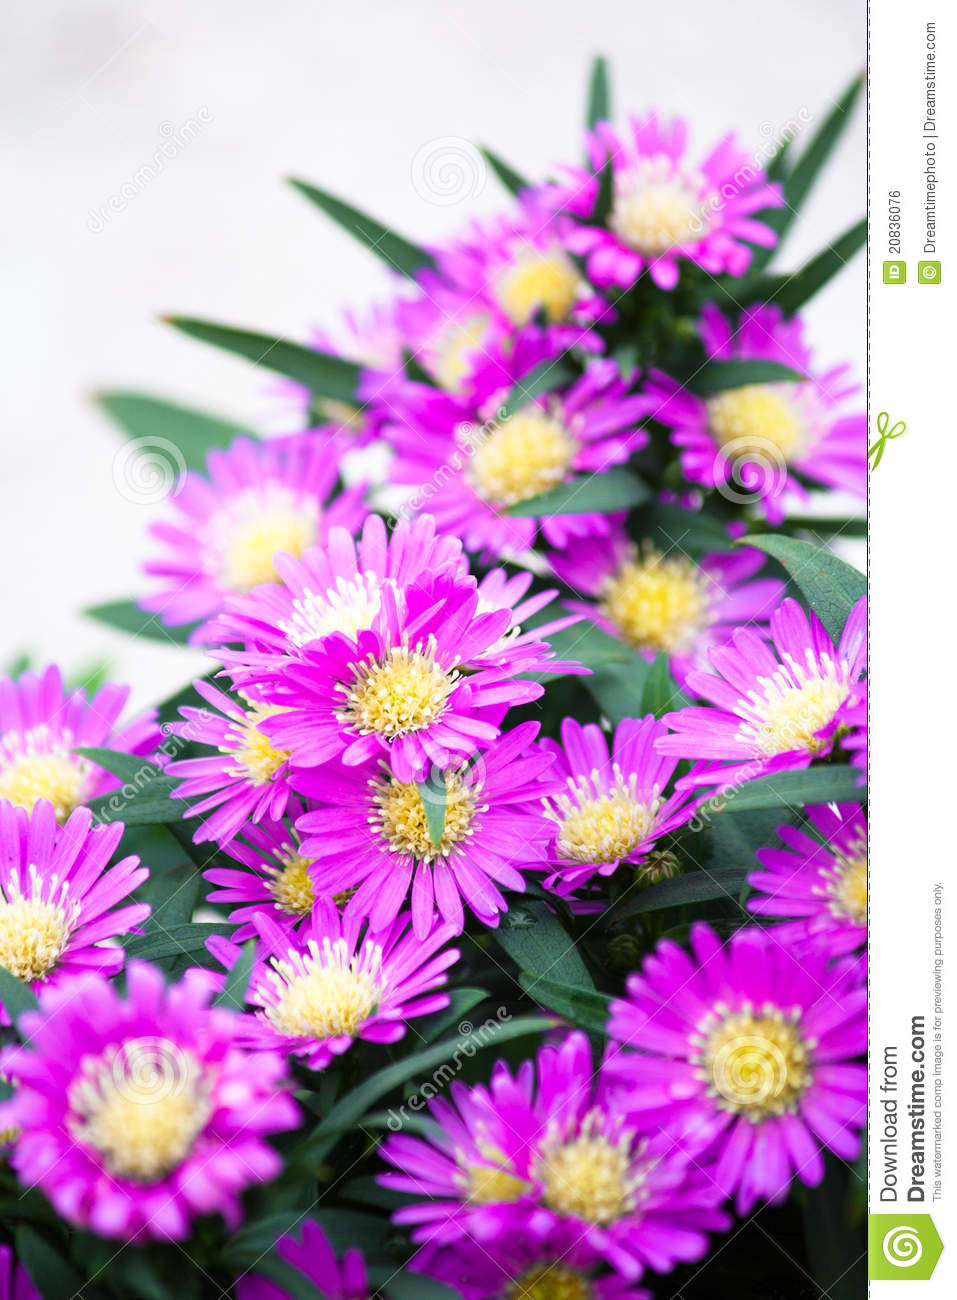 Beauty Of Flowers Stock Photo Image Of Background Field 20836076